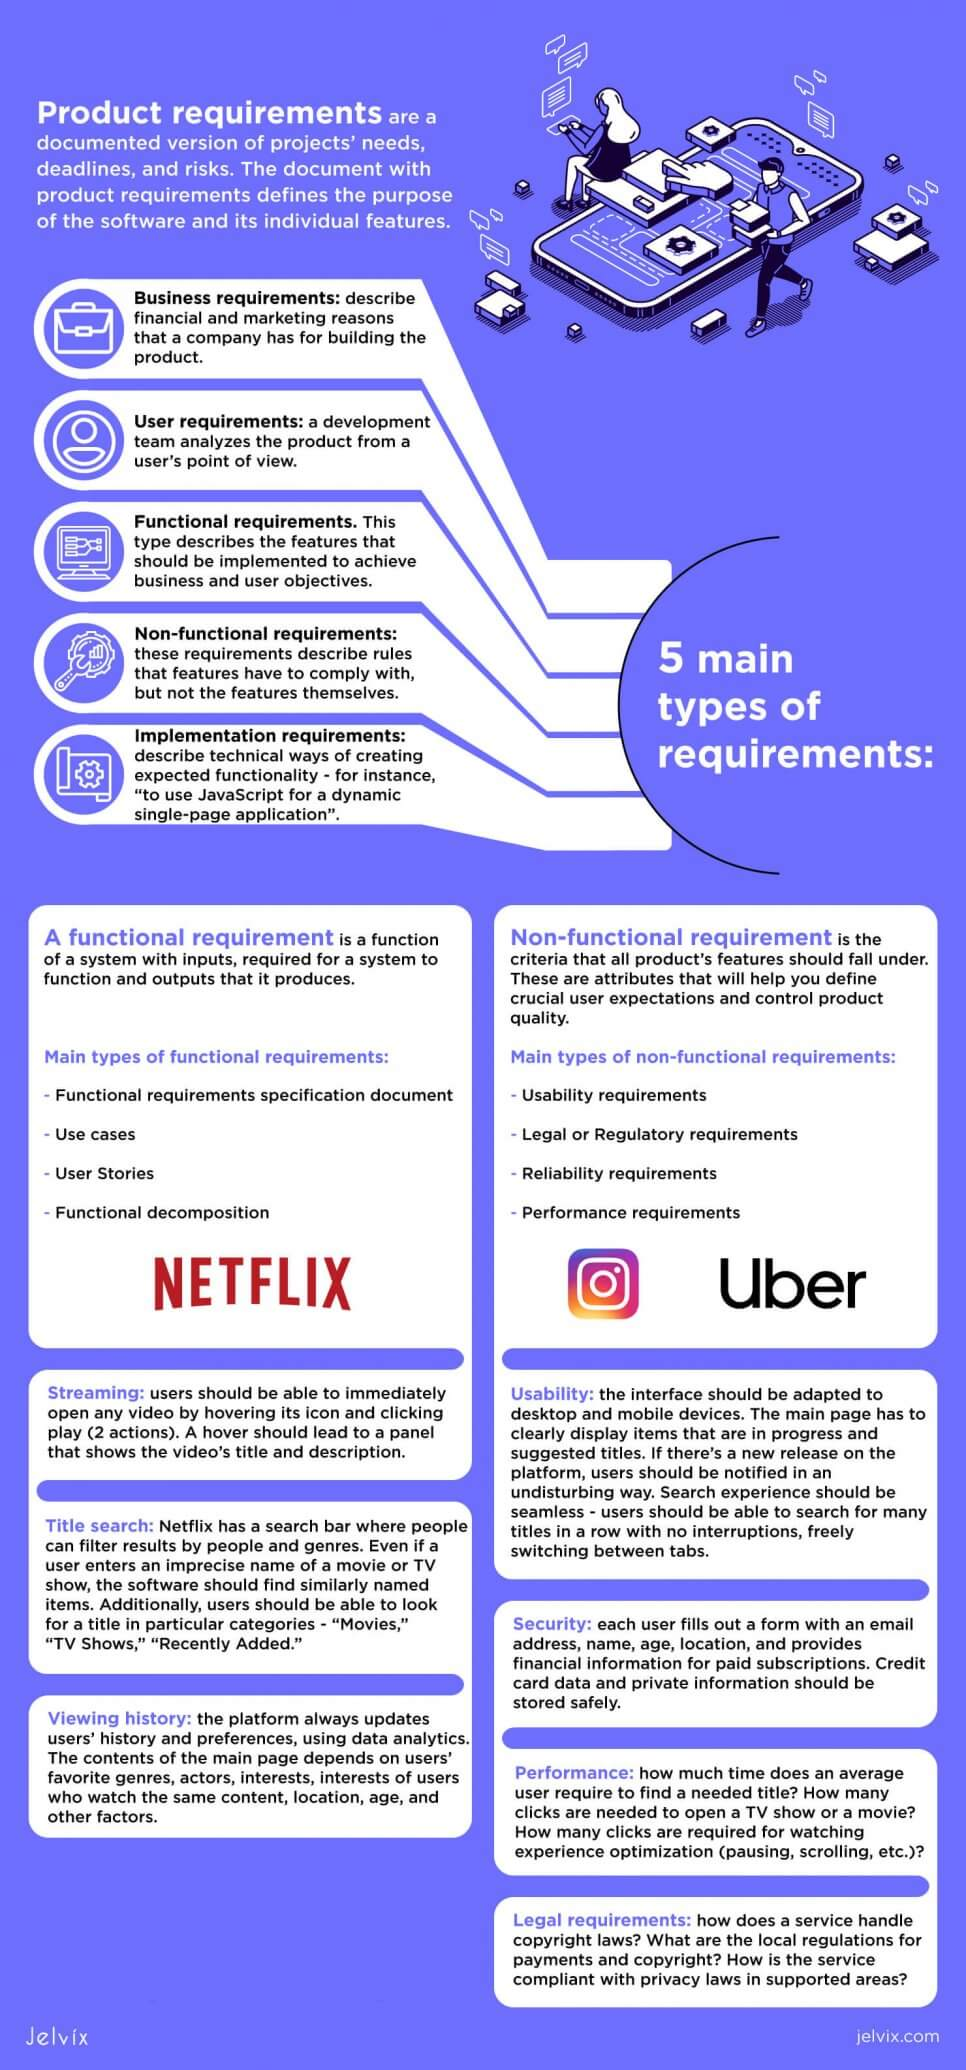 types of requirements infographic